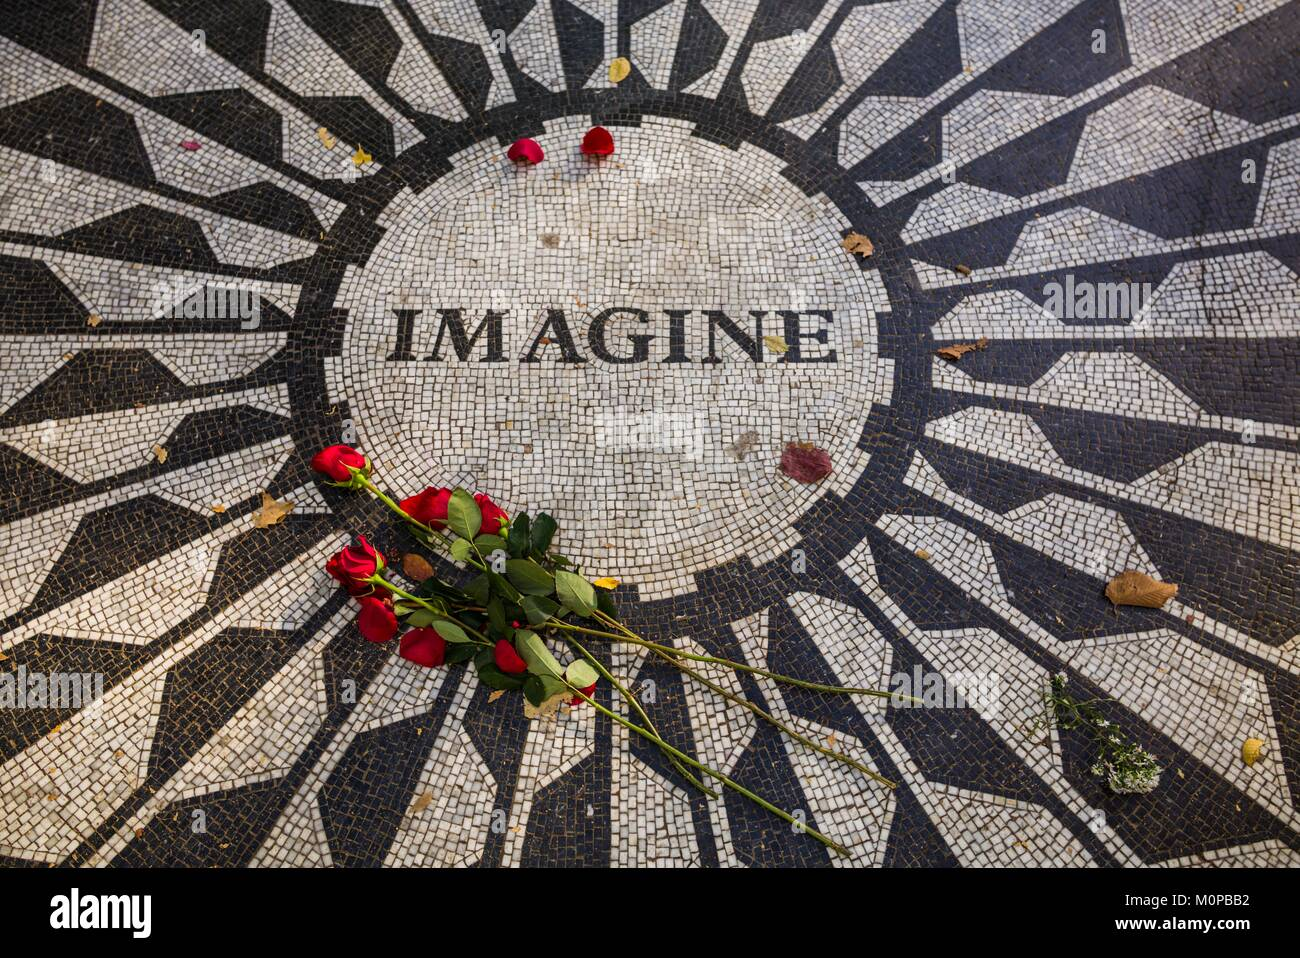 United States,New York,New York City,Central Park,Strawberry Fields,memorial to John Lennon - Stock Image